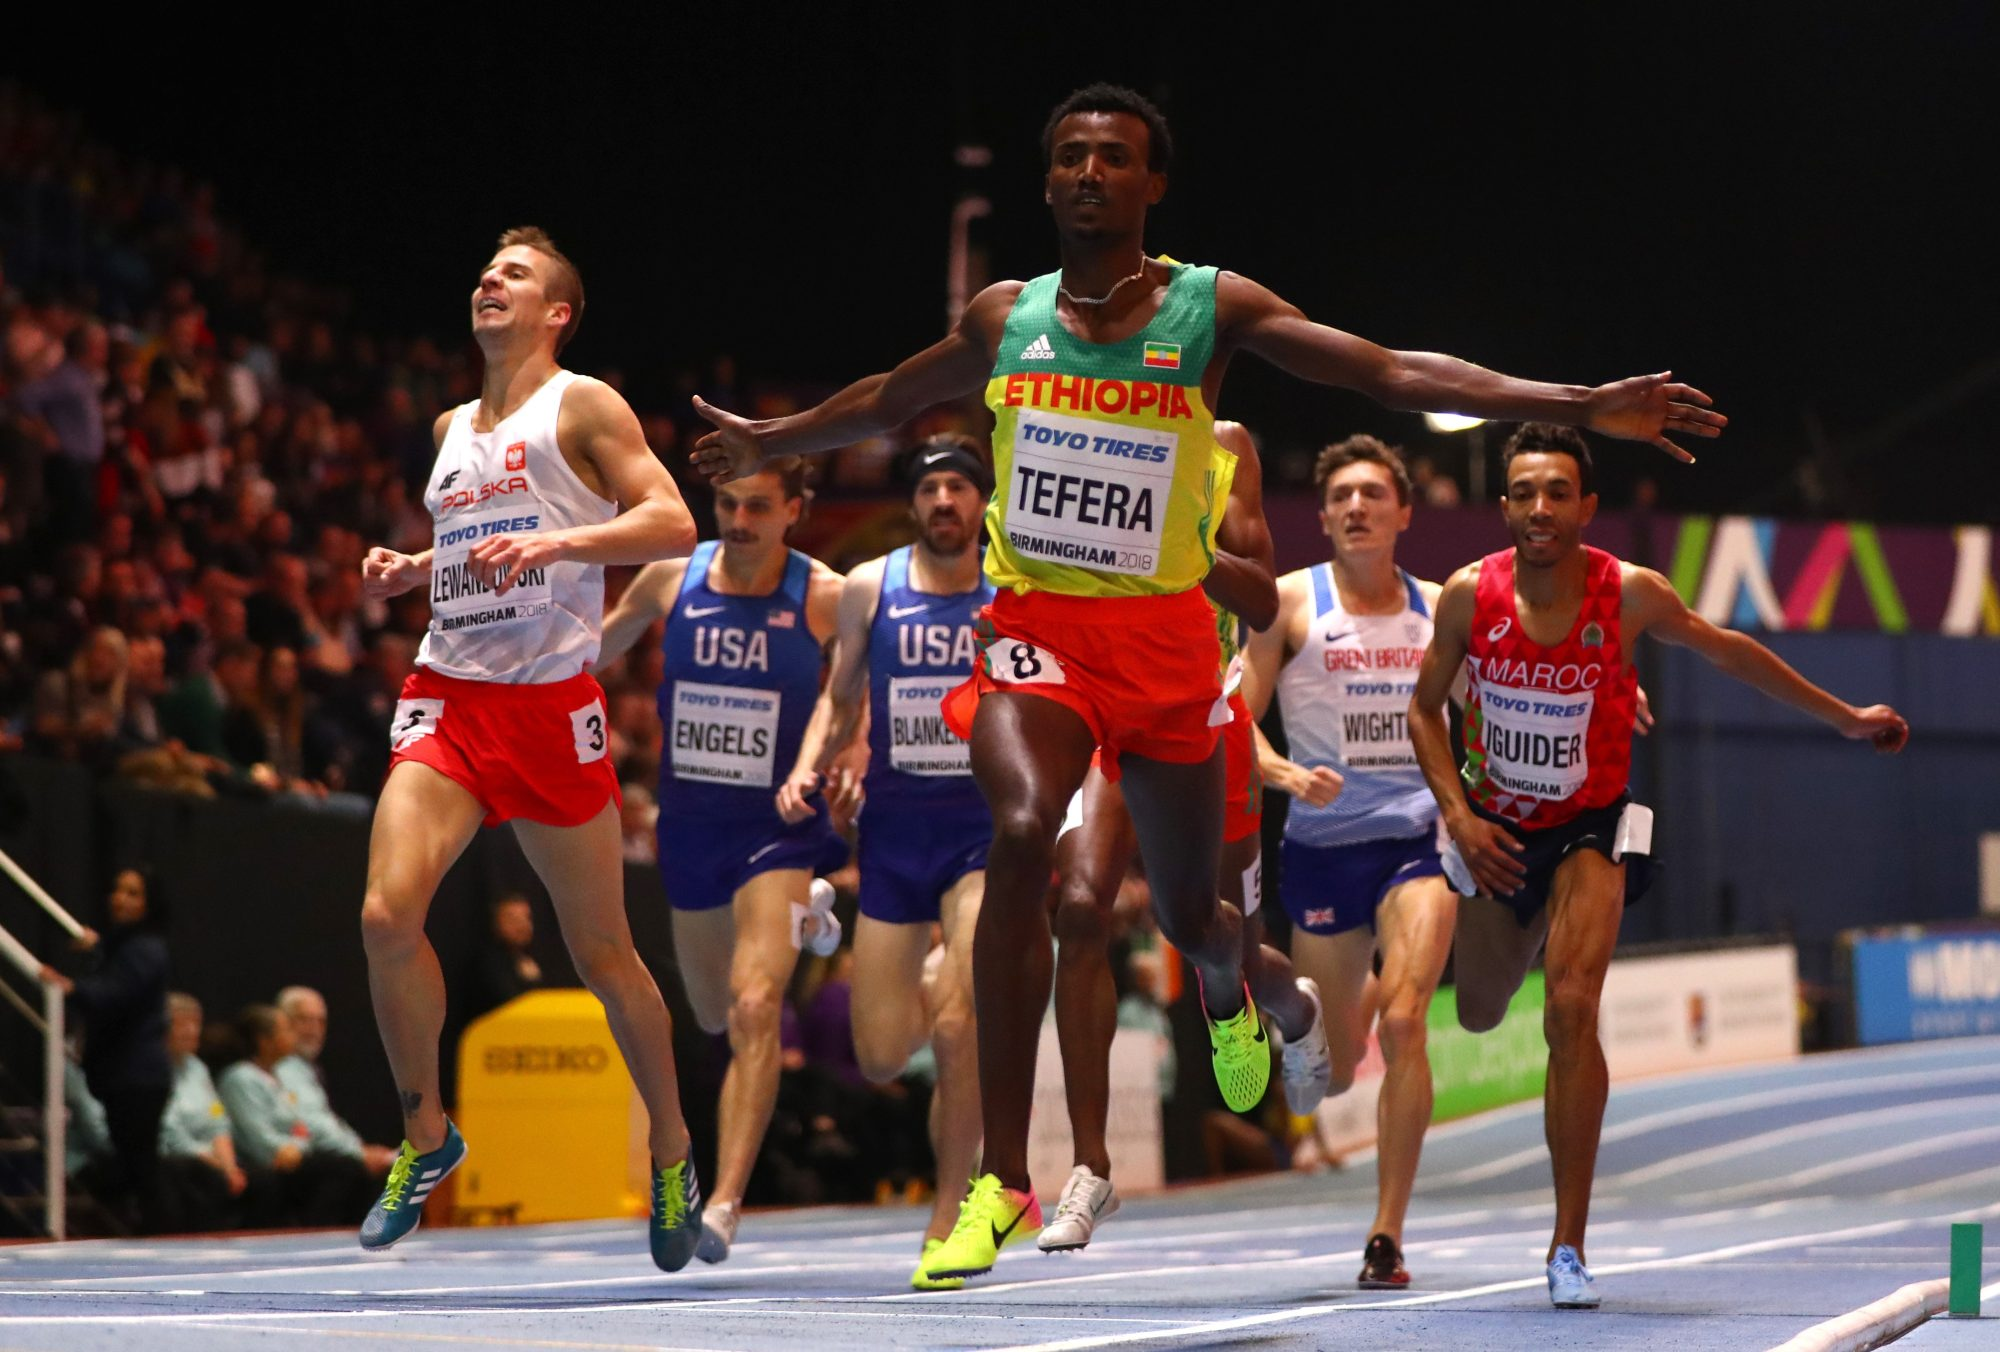 Gold Medallist, Samuel Tefera of Ethopia celebrates winning the Mens 1500 Metres Final during the IAAF World Indoor Championships on Day Four at Arena Birmingham on March 4, 2018 in Birmingham, England. (Photo by Michael Steele/Getty Images for IAAF)